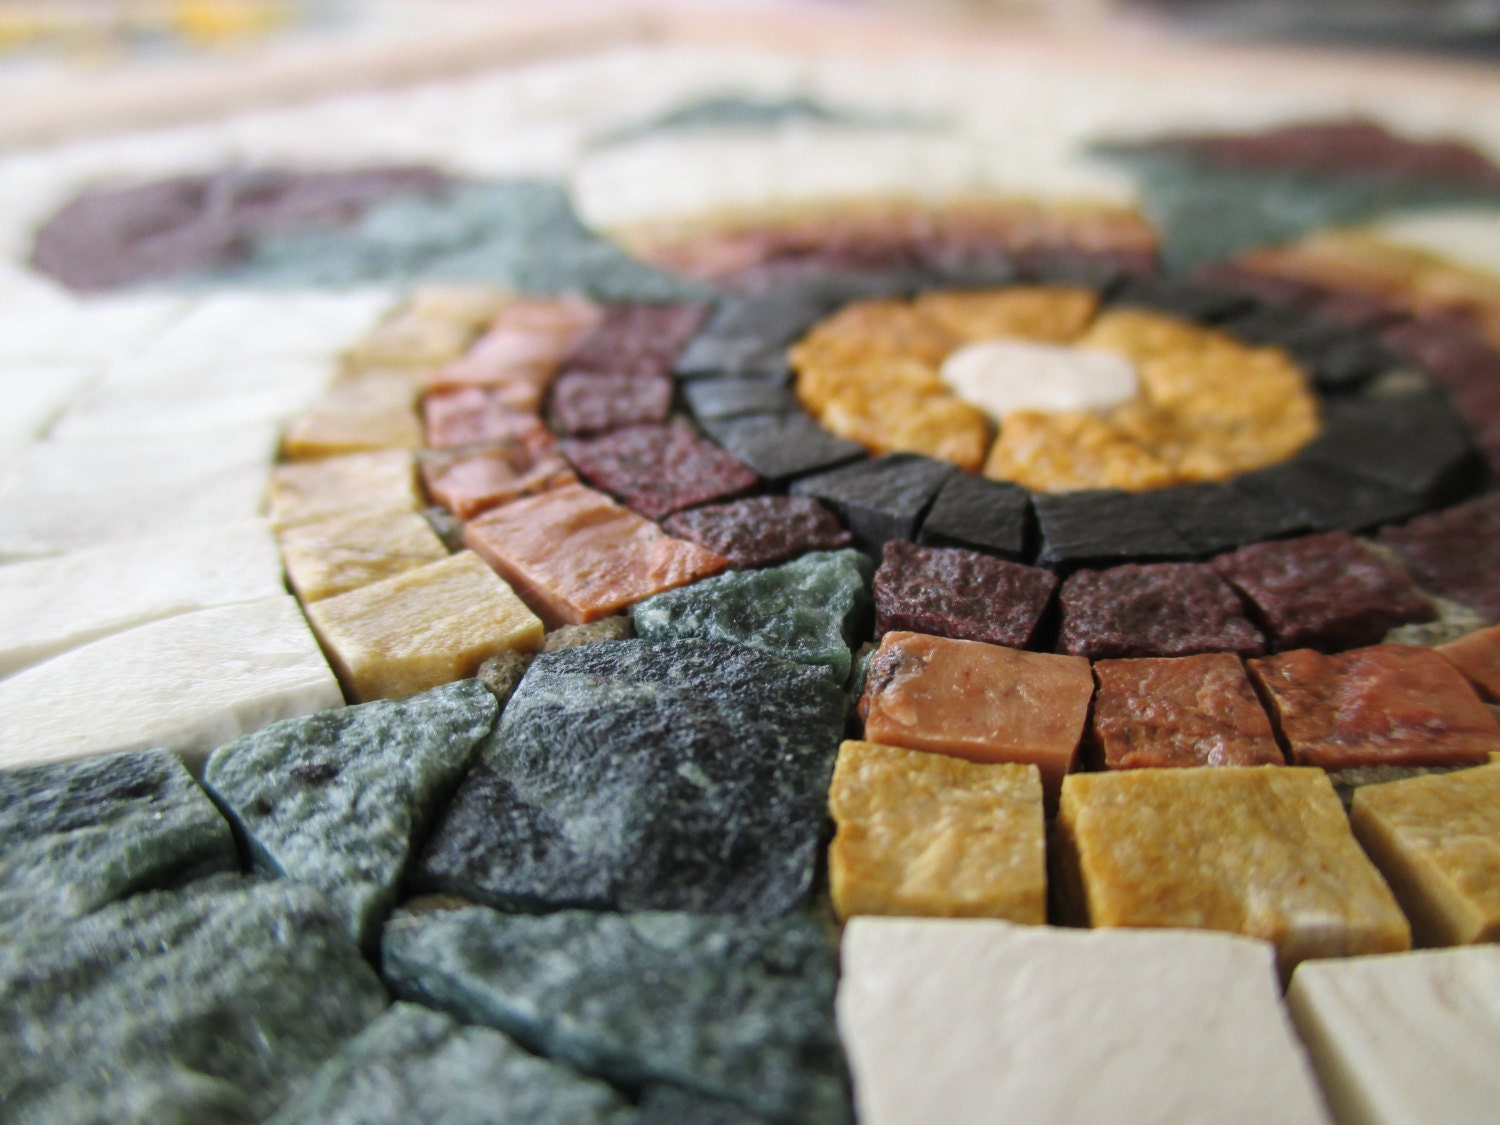 Diy roman mosaics kit for adults pomegranate flower marble mosaic sold by myrijoy solutioingenieria Choice Image